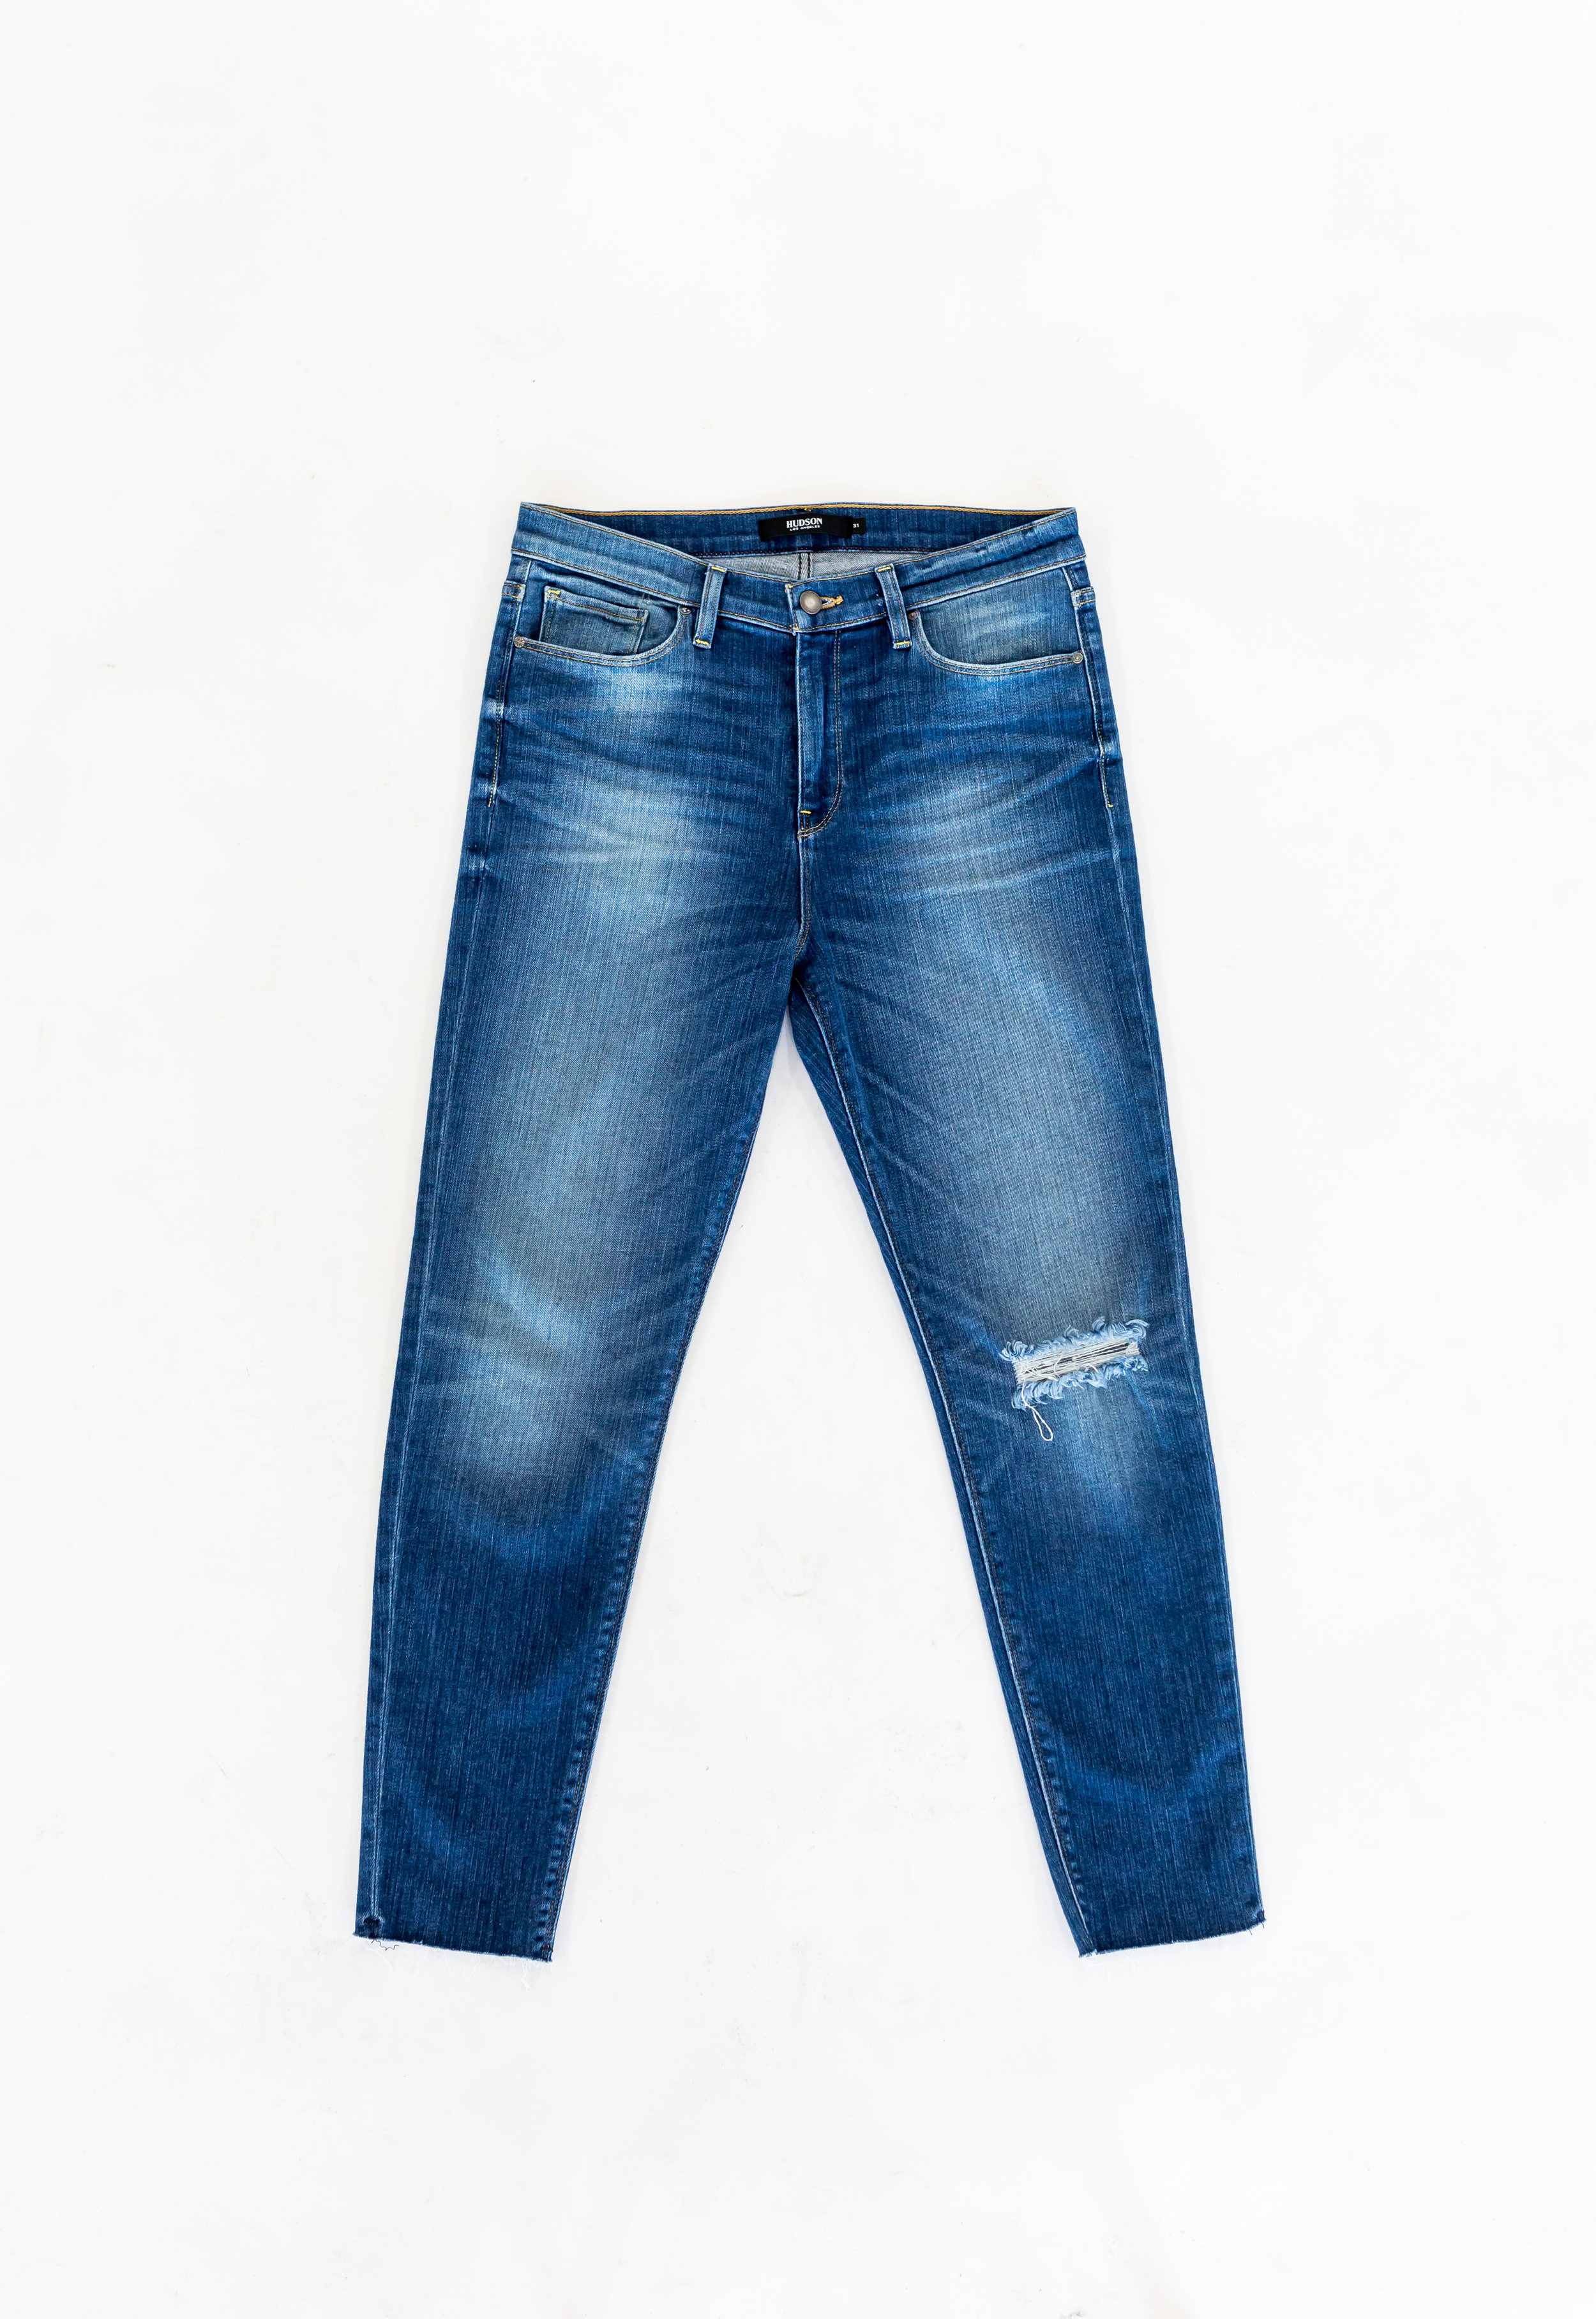 Mid-Rise, Ripped, Ankle Jeans - Hudson Nico